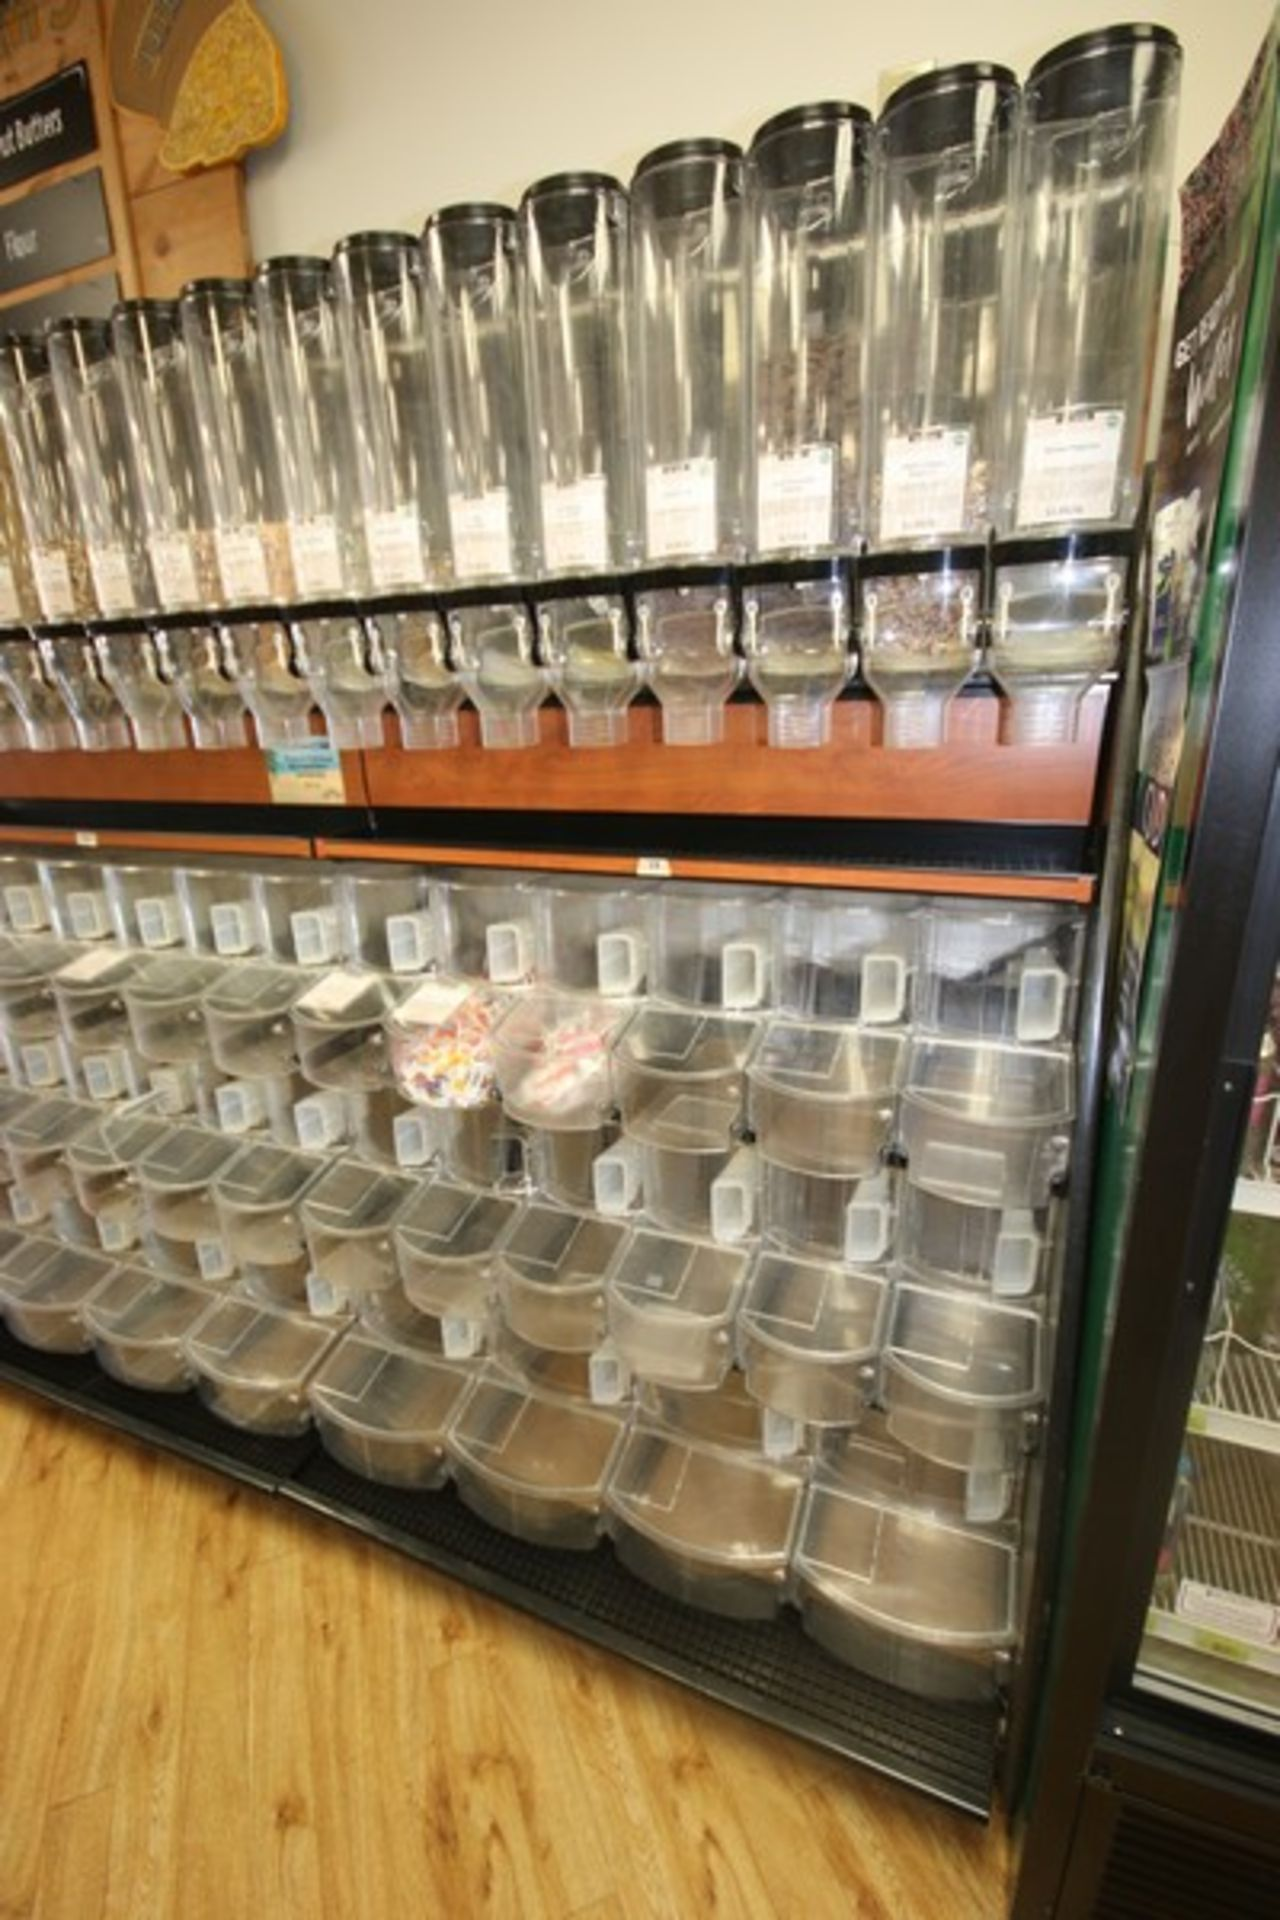 Dispensing Unit, with (8) Plastic Gravity Dispensing Units & (18) Plastic Scoop Bins, Overall Dims.: - Image 2 of 2